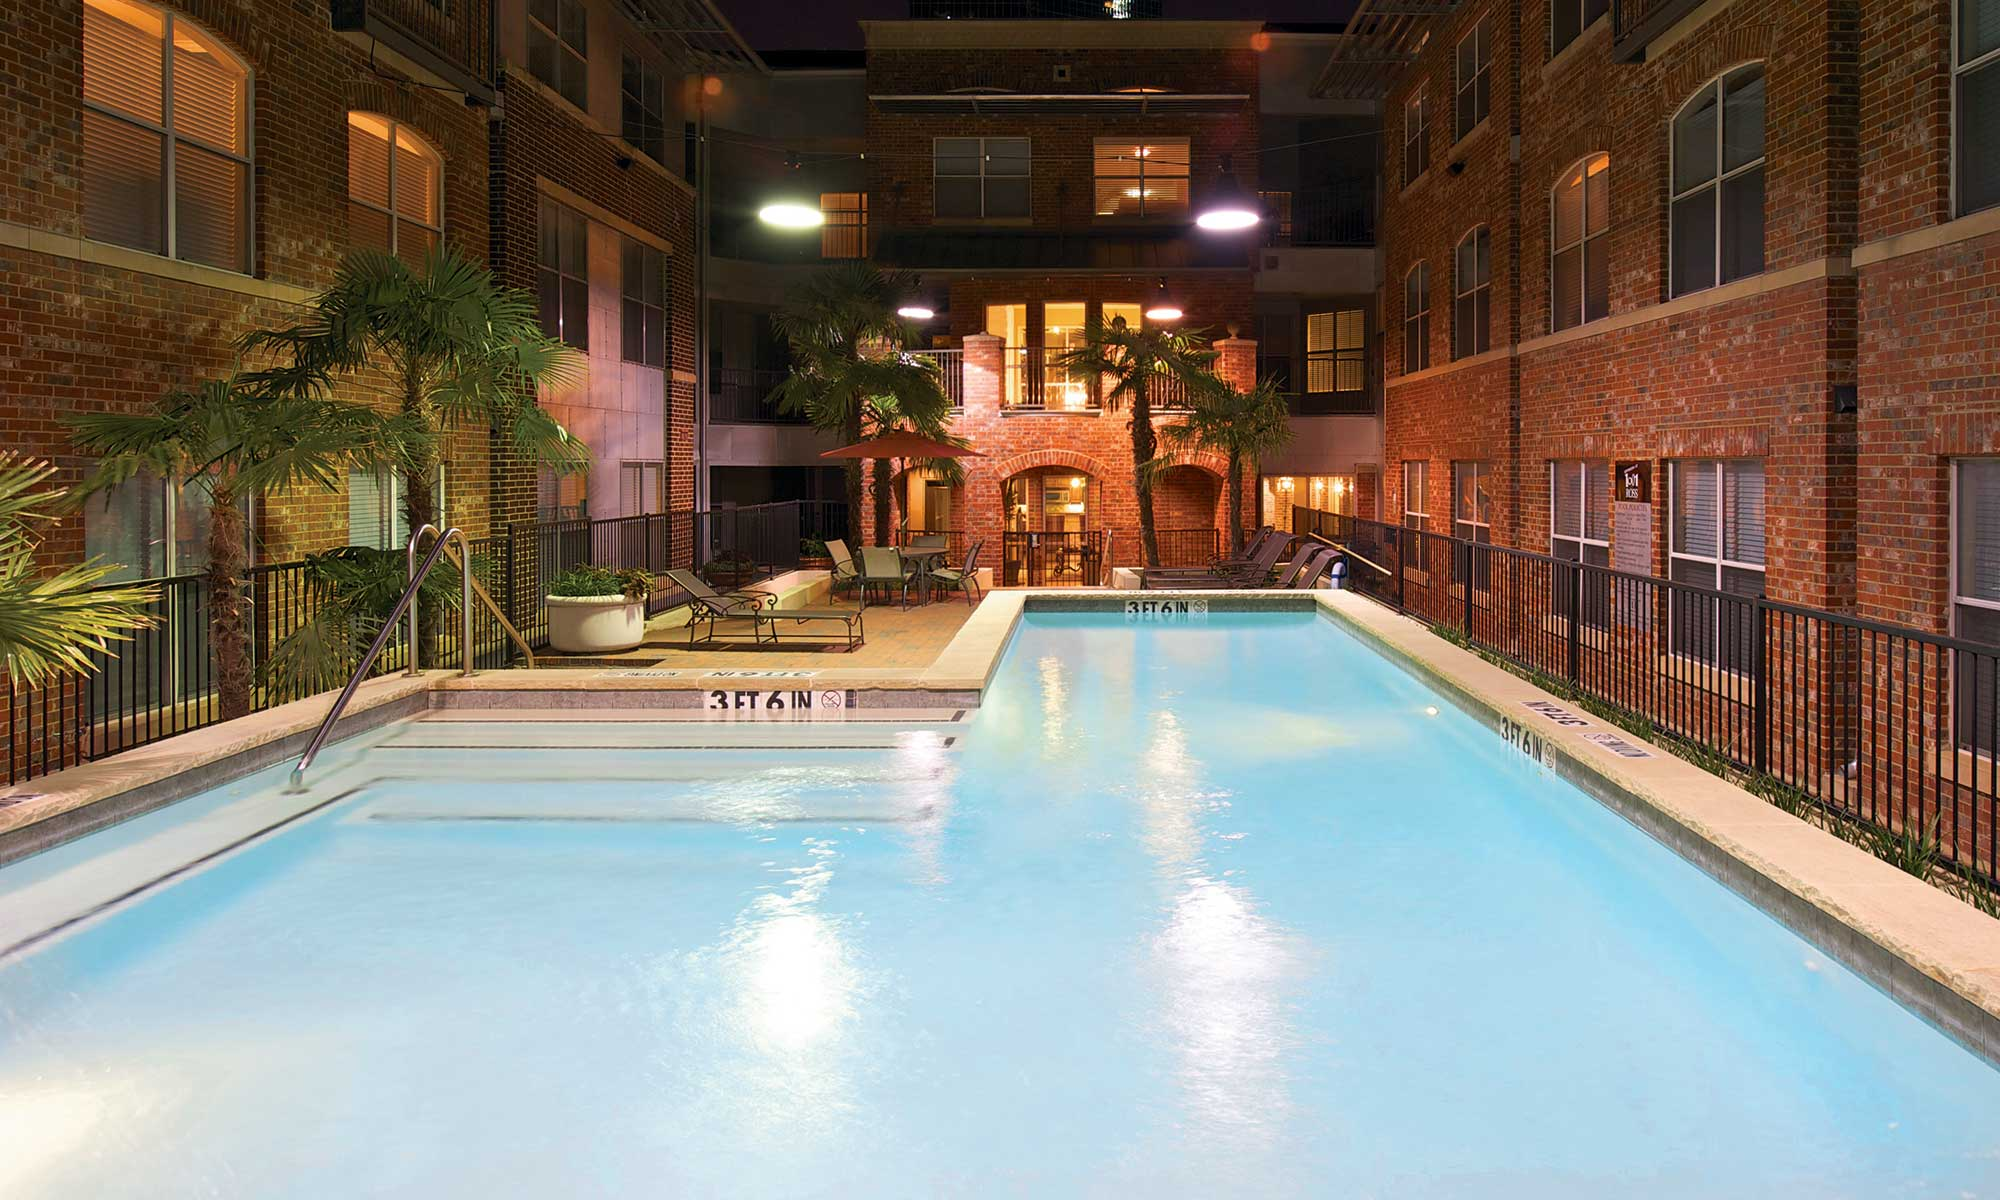 West end dallas tx apartments for rent 1001 ross - Cheap 3 bedroom apartments in dallas tx ...